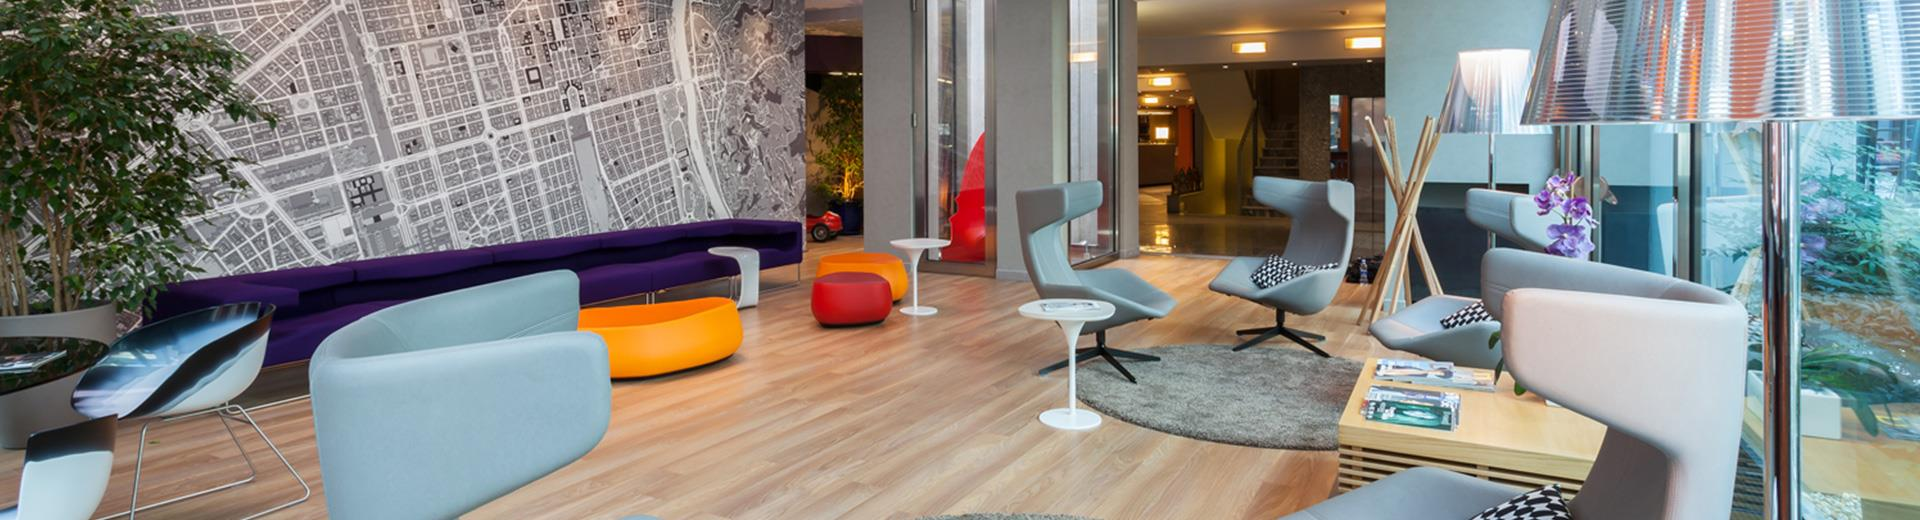 Best western plus executive hotel and suites hotel 4 for Amsterdam hotel centro 4 stelle